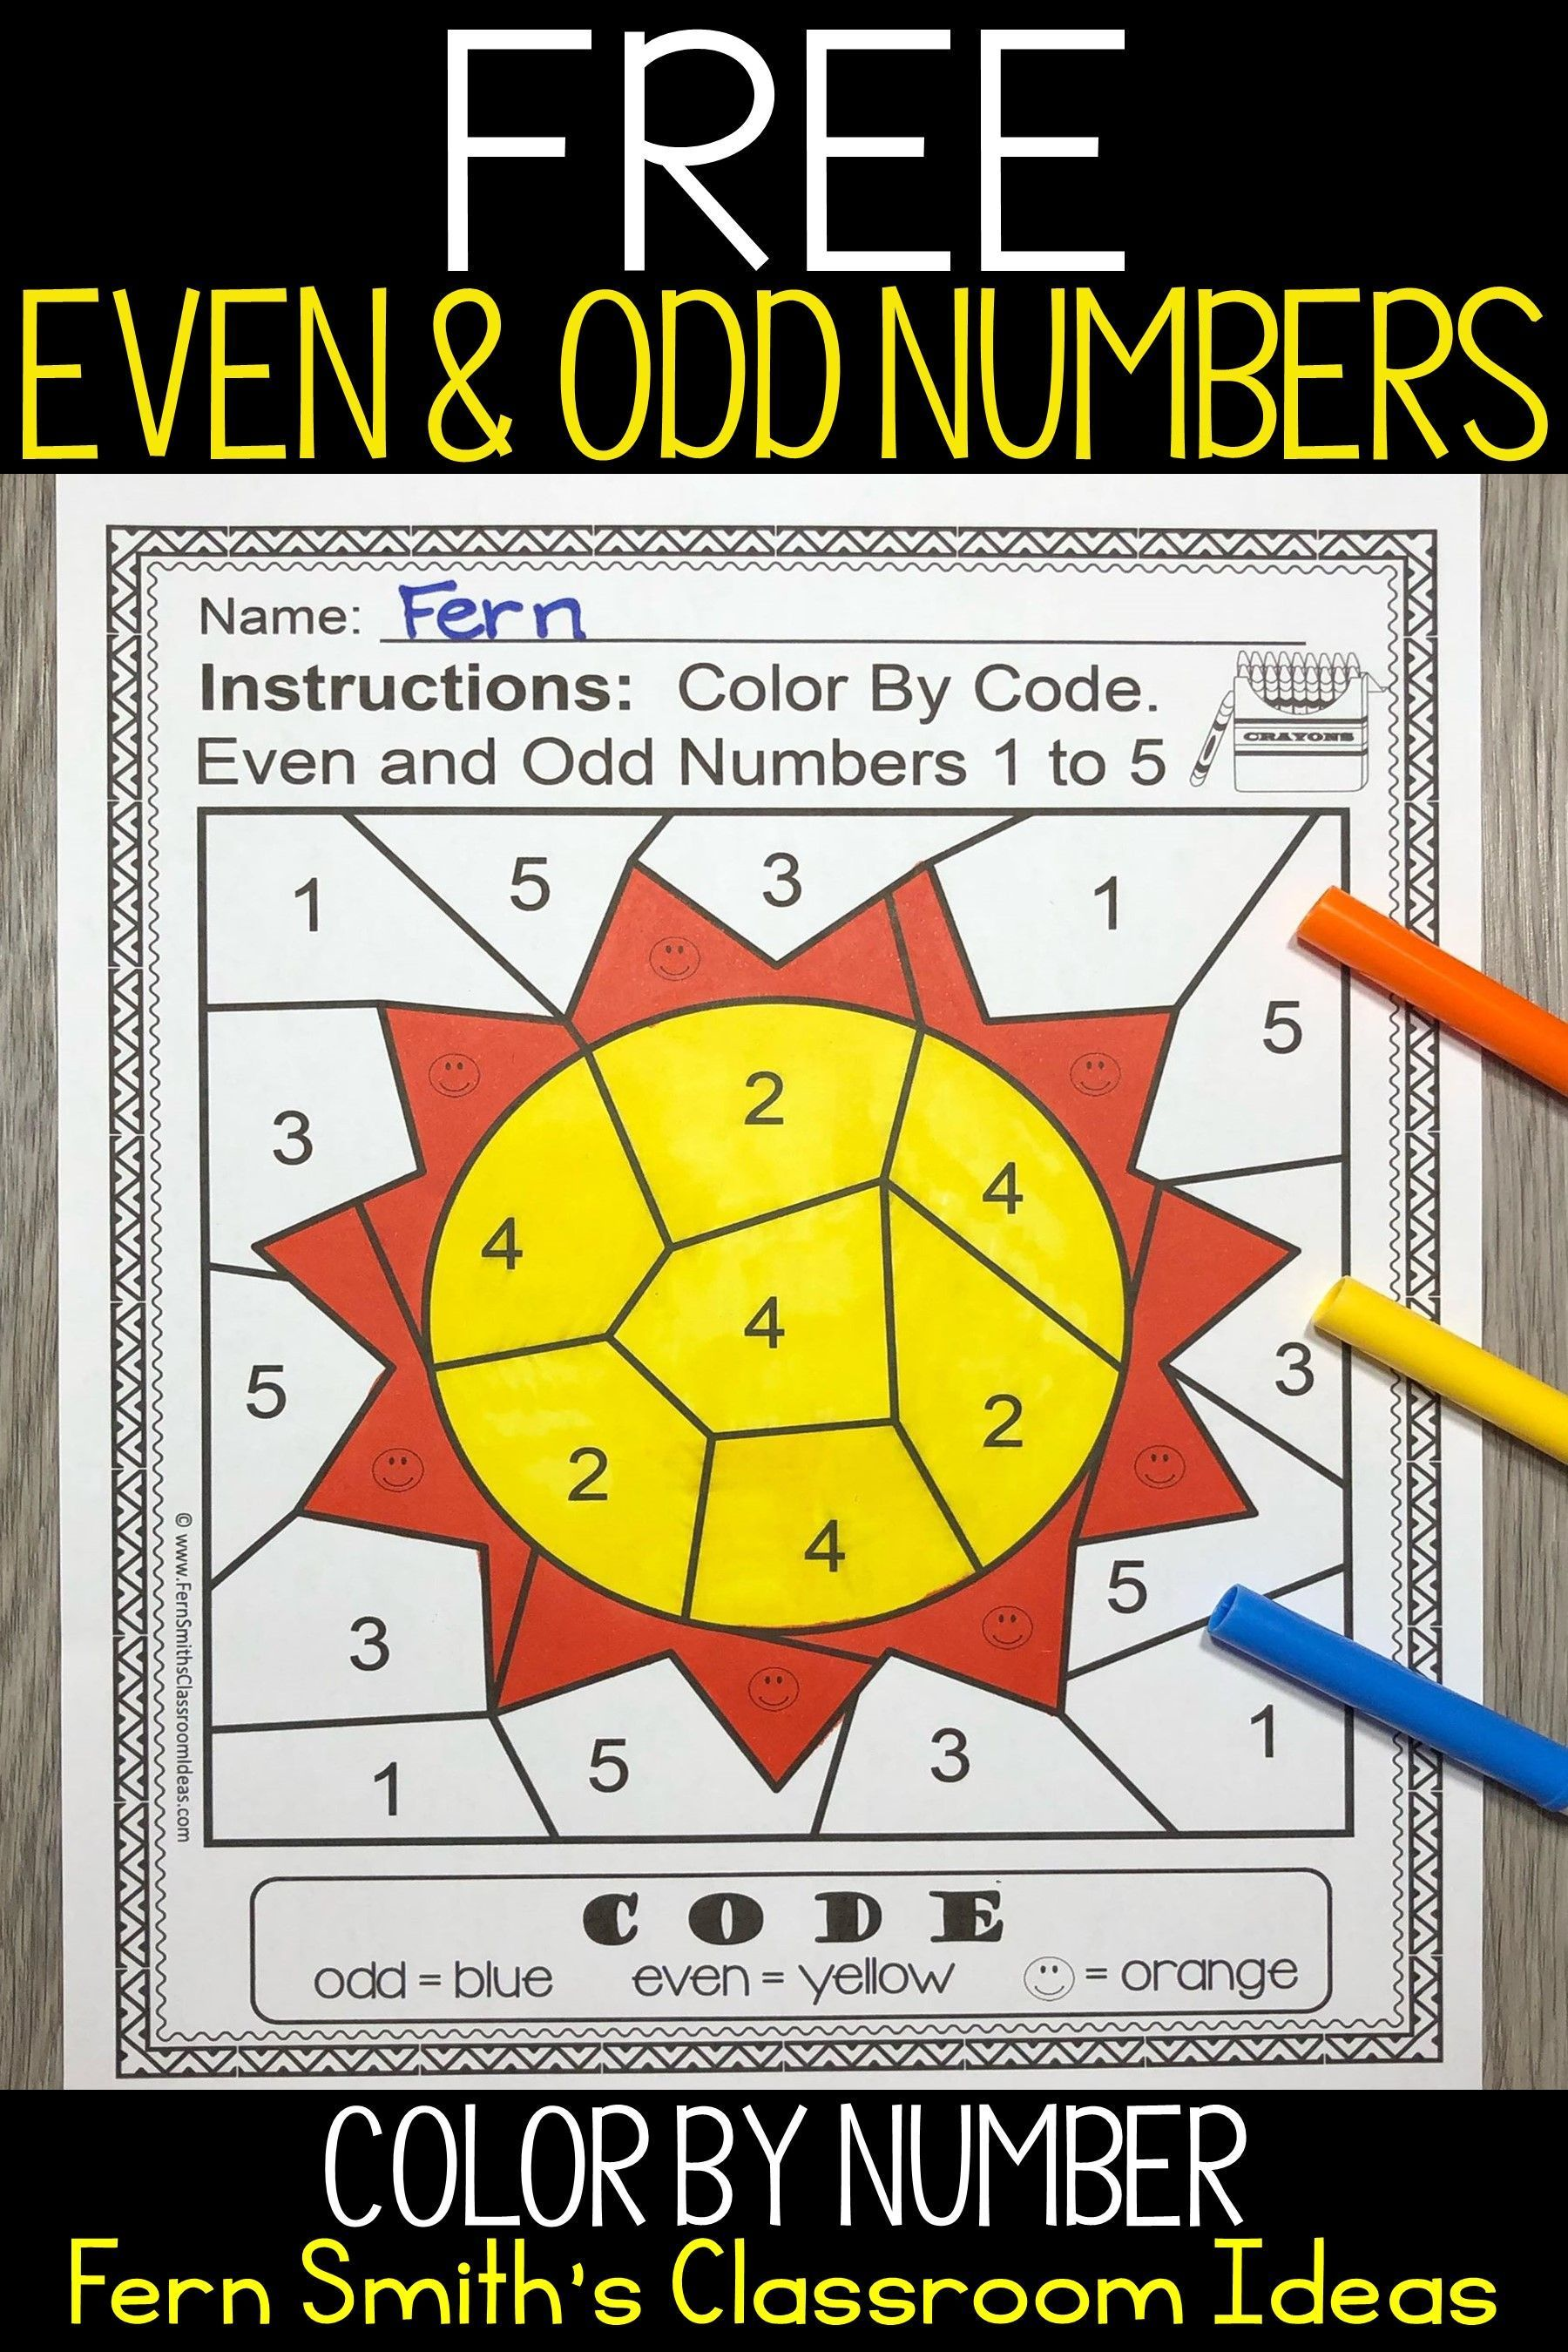 Are You Getting Ready To Teach Odd And Even Numbers In